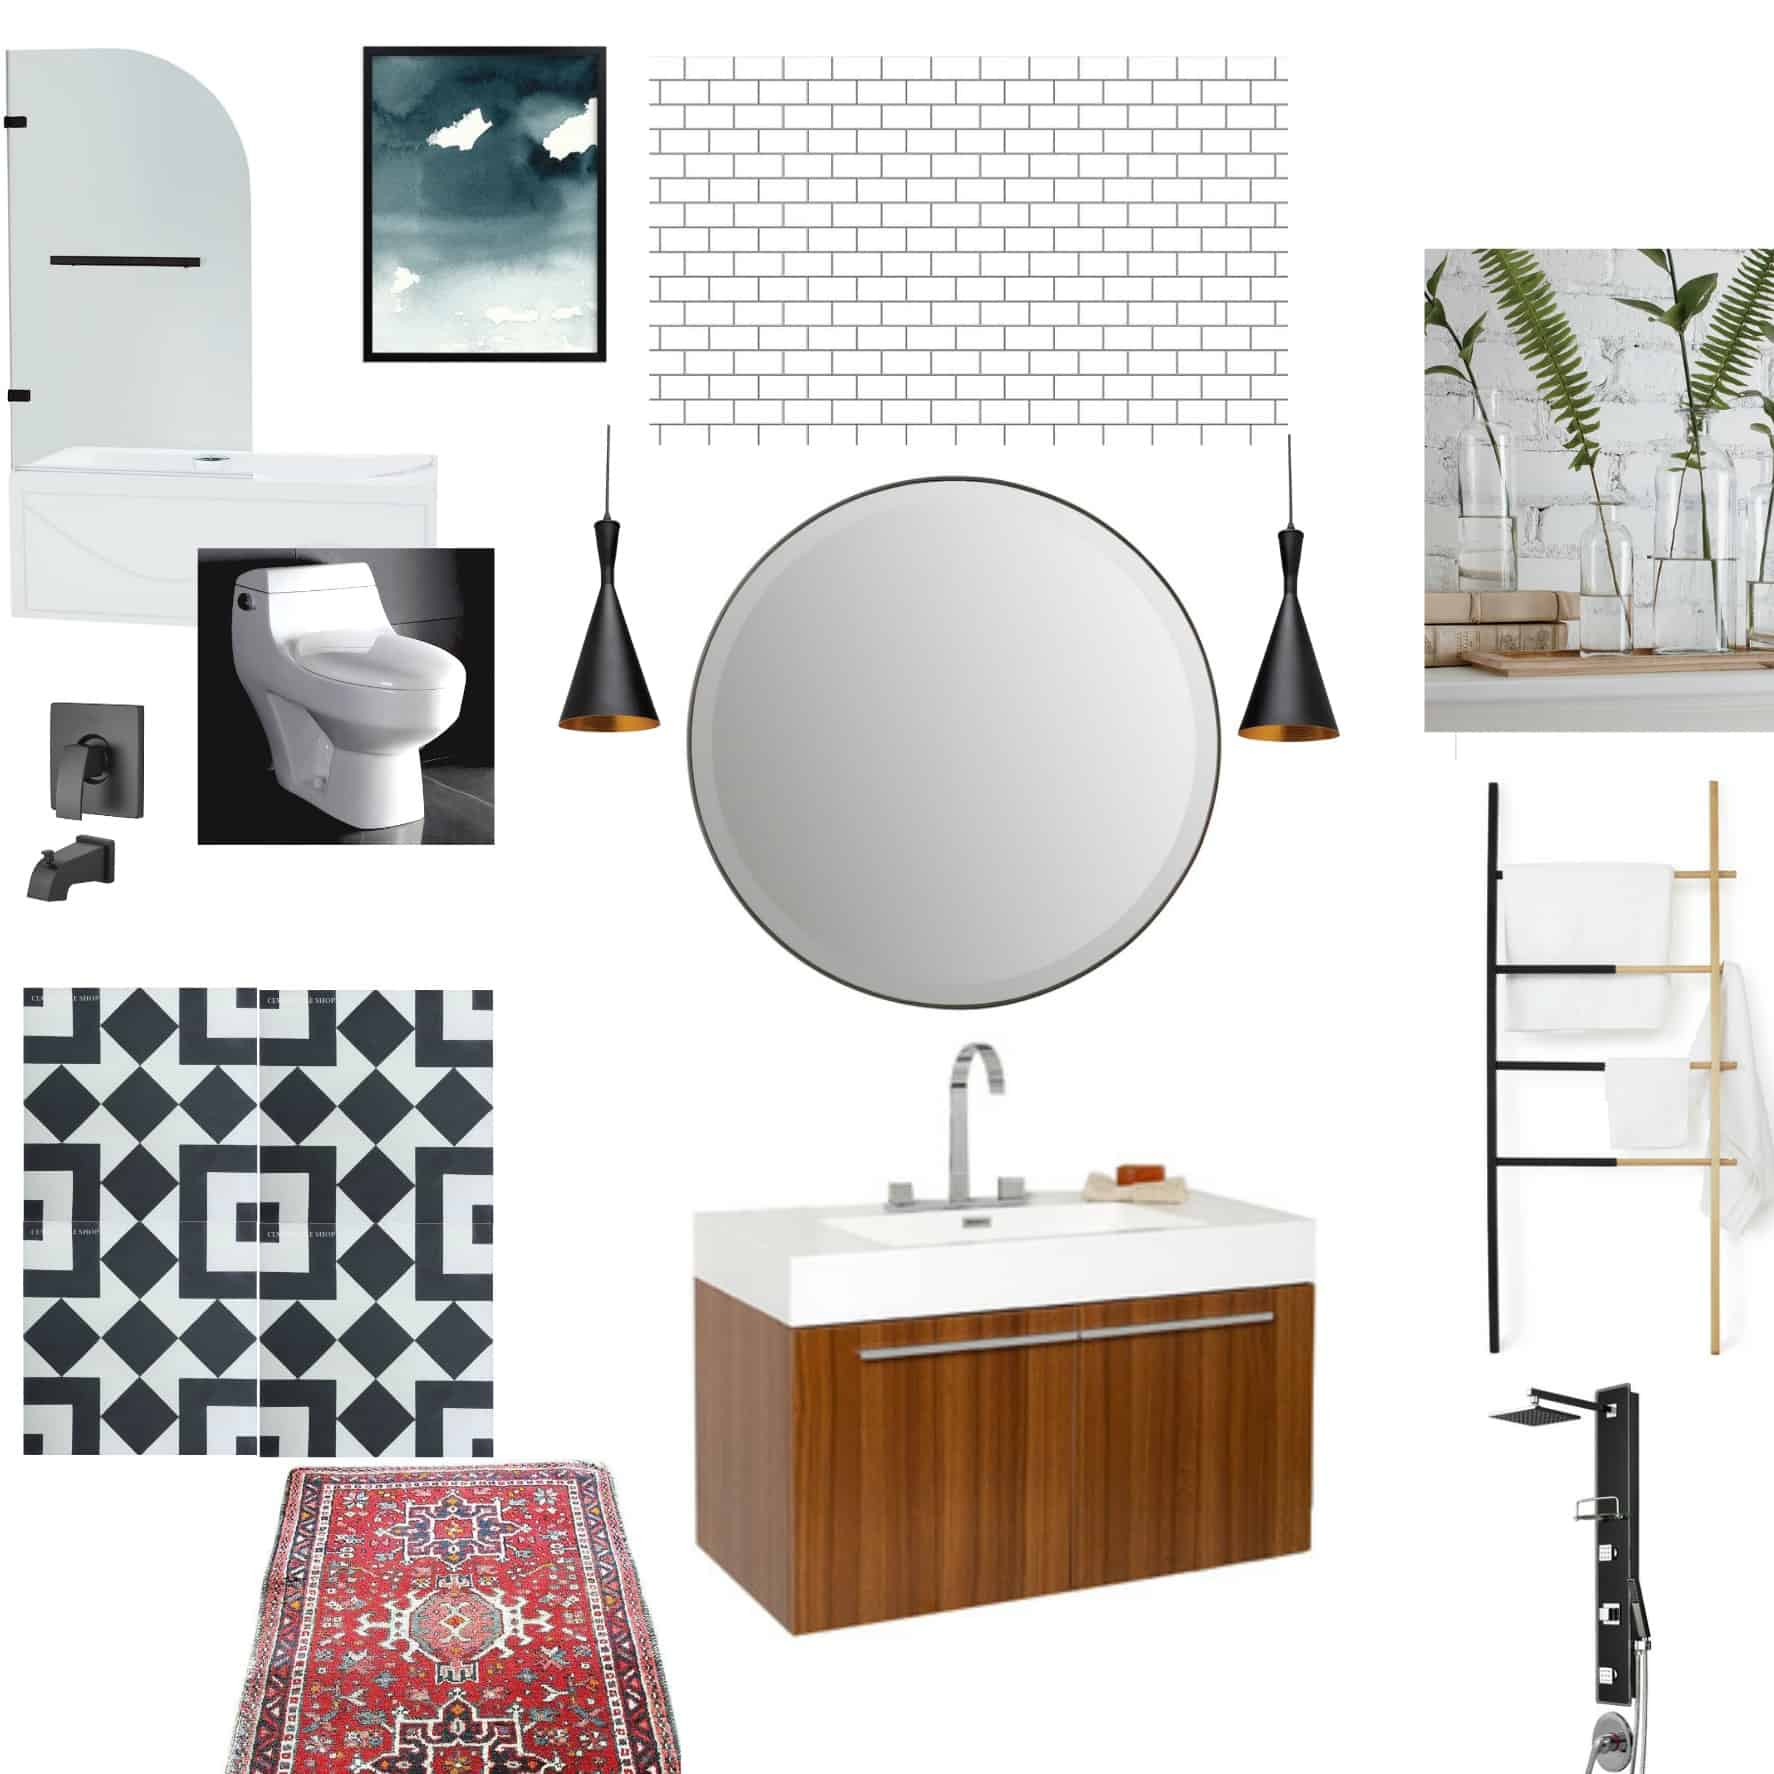 bathroom-design-2